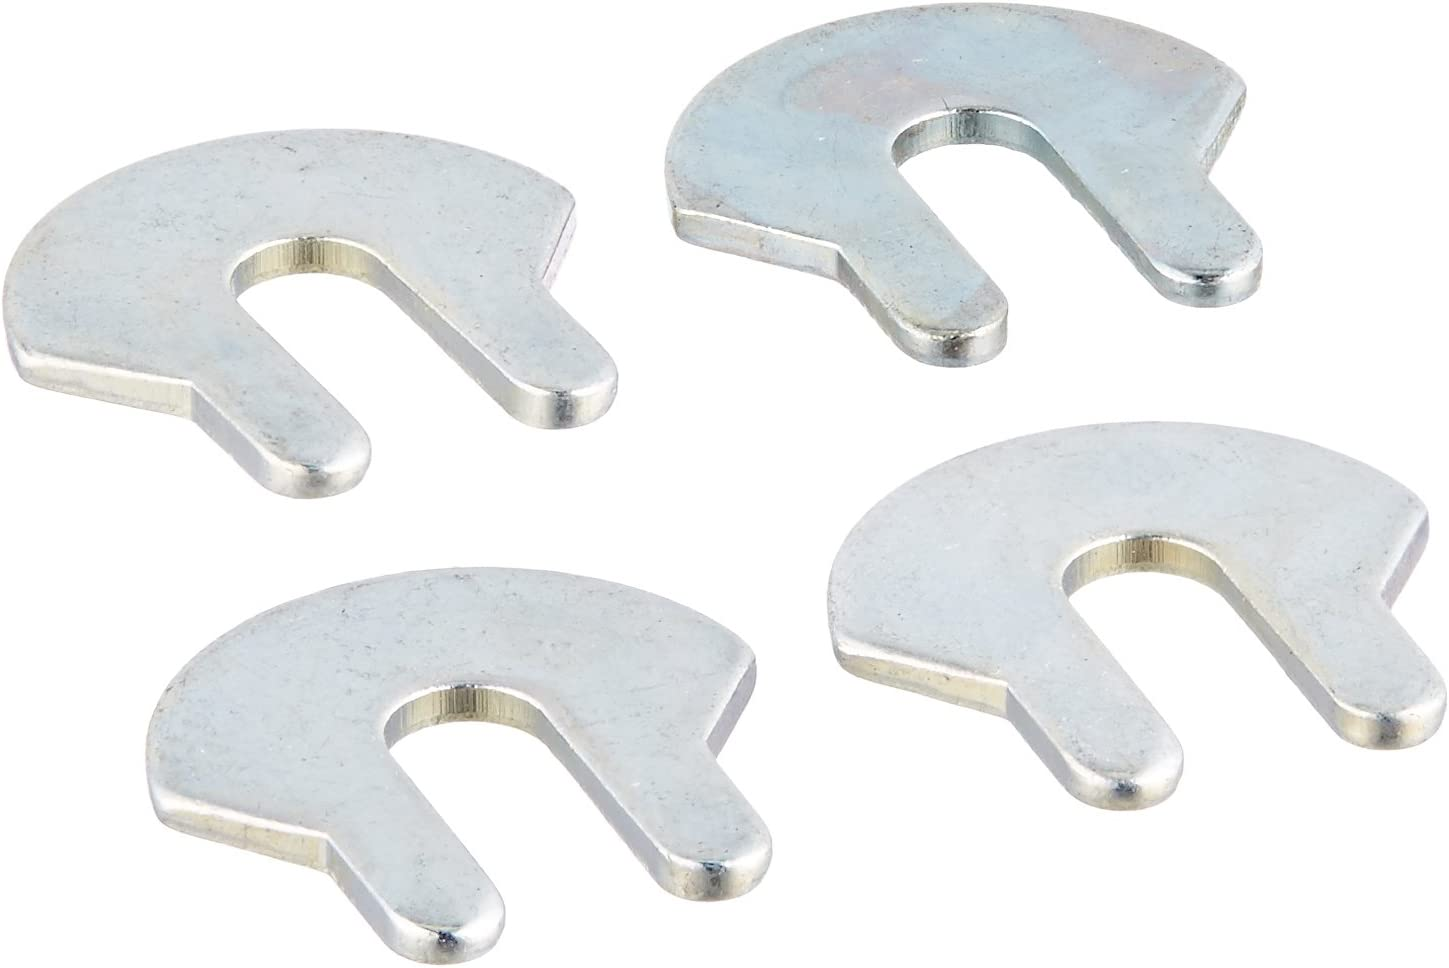 Carlson Quality Brake 70% OFF Outlet Parts Hold Down H1178-2 Part outlet